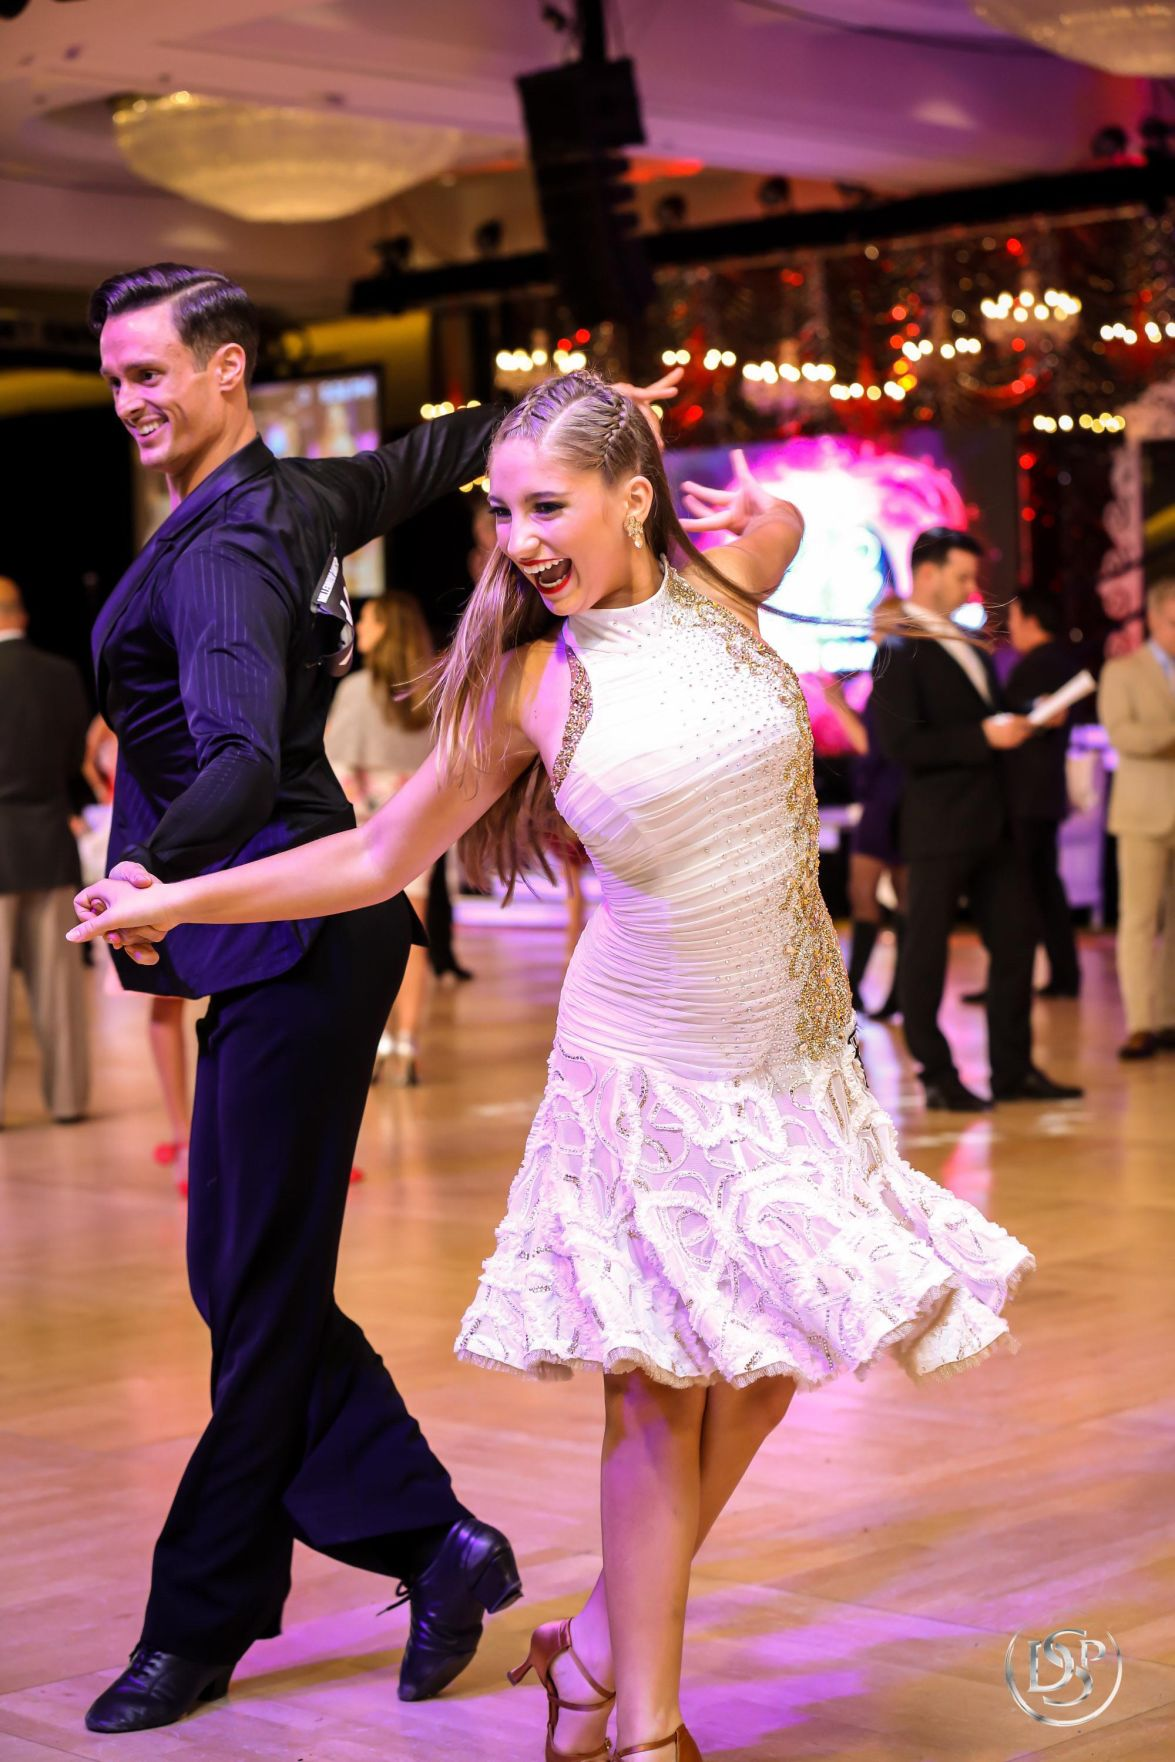 Strictly ballroom: The remarkable journey of Ariel Mayer 14-year-old ballroom champion